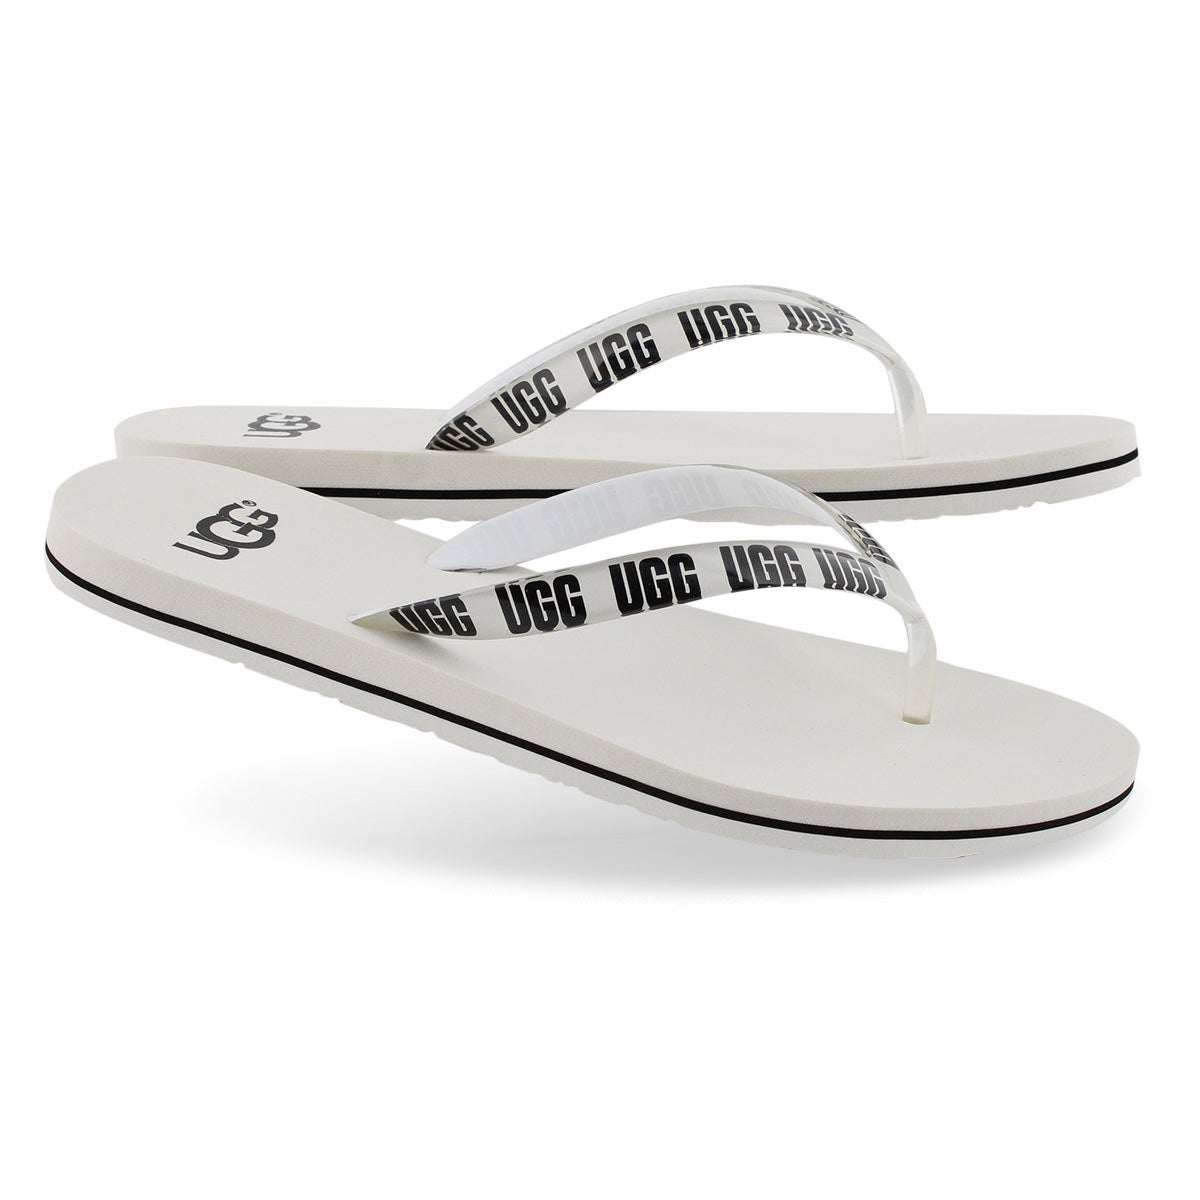 Women's SIMI GRAPHIC white thong sandals